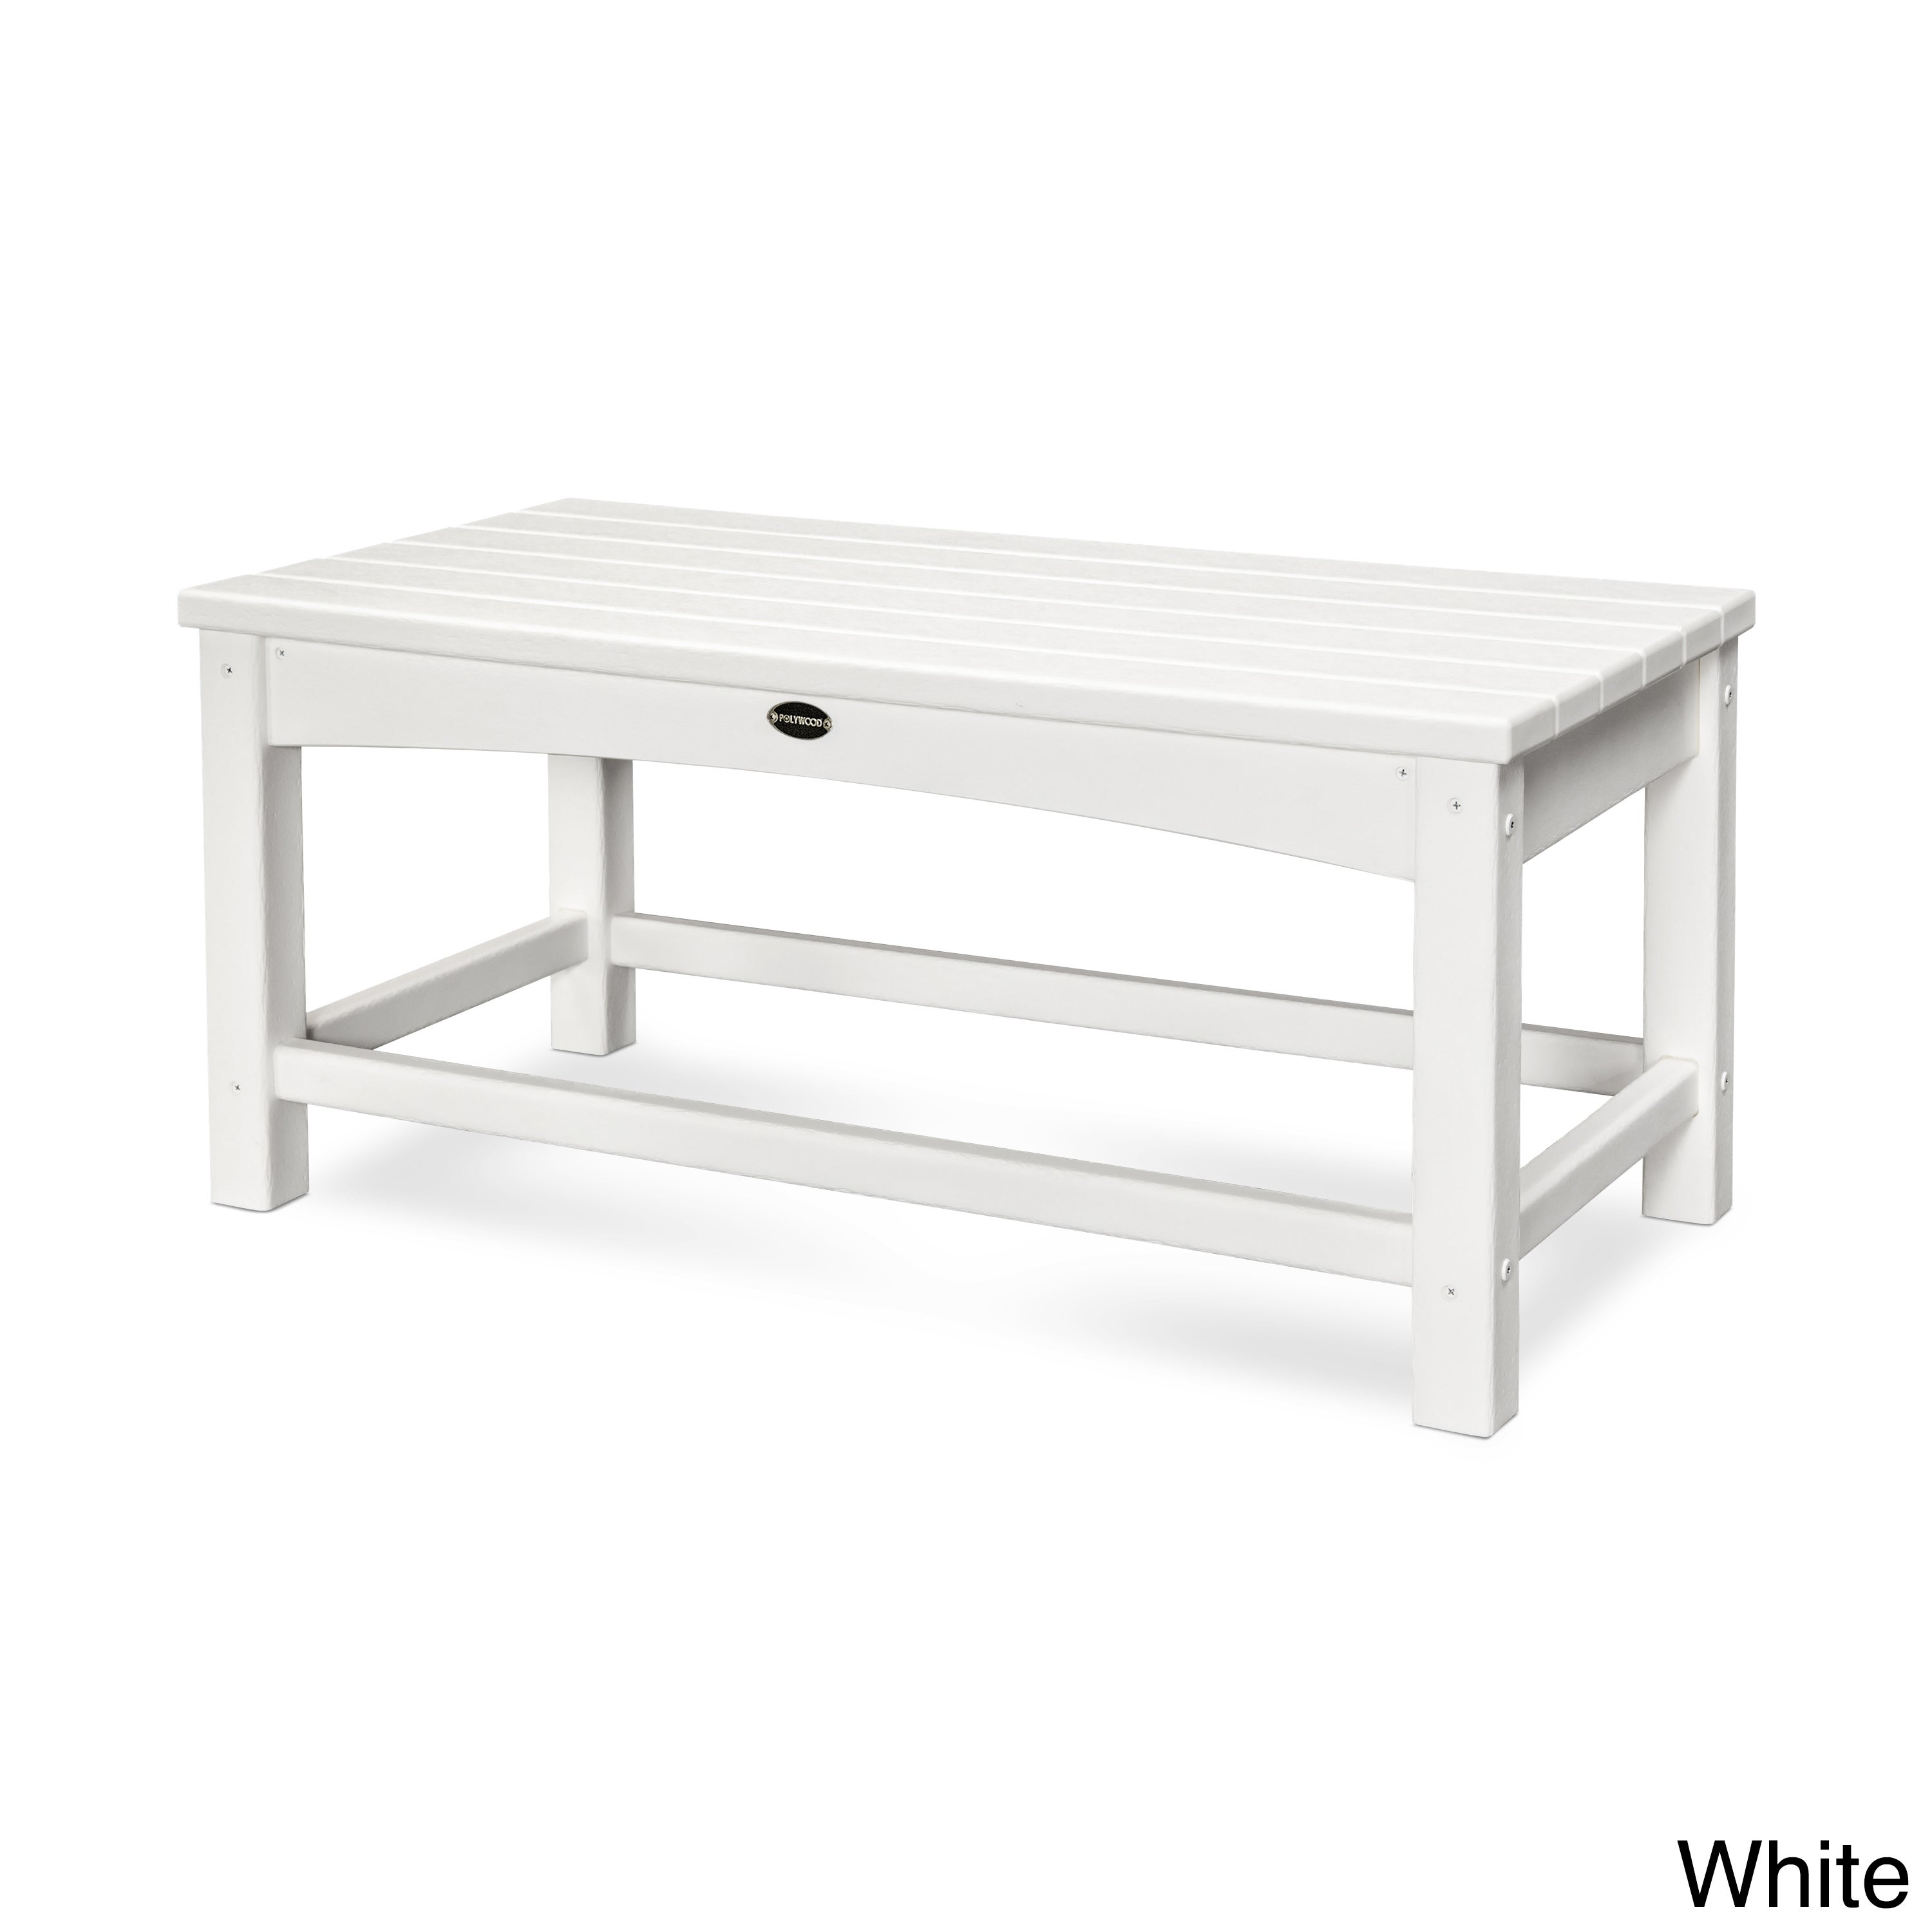 Shop Polywood Club Coffee Table Free Shipping Today Overstock - Polywood coffee table